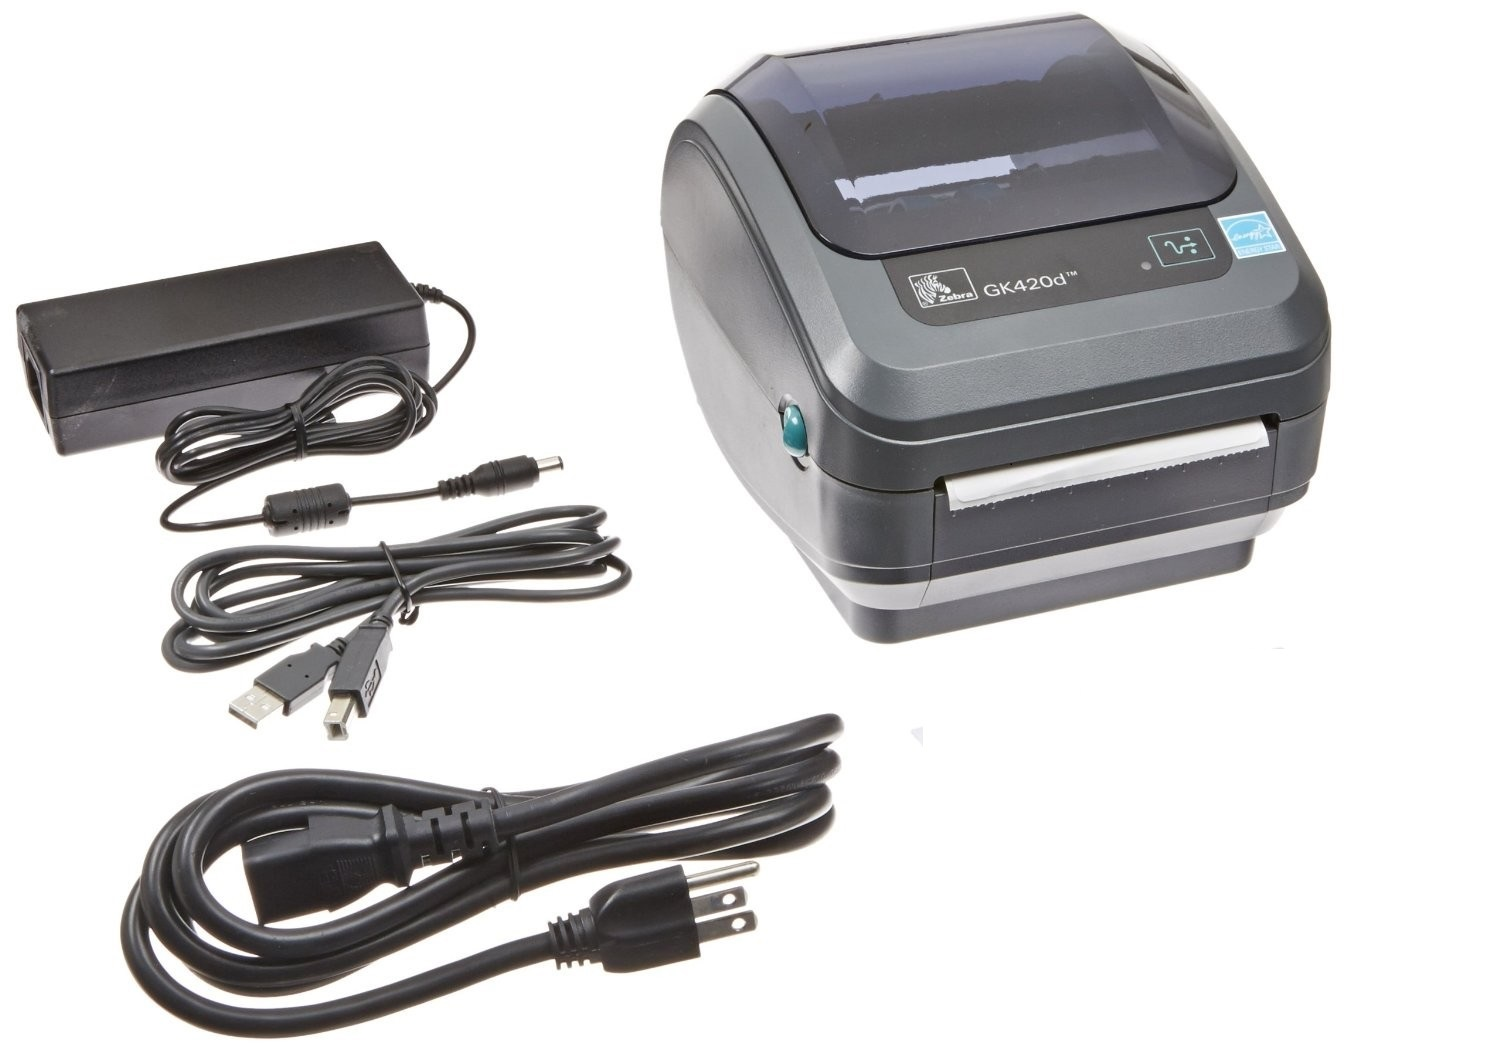 Zebra GK420d Direct Thermal Monochrome Printer 203dpi Serial Parallel USB GK42-202510-000